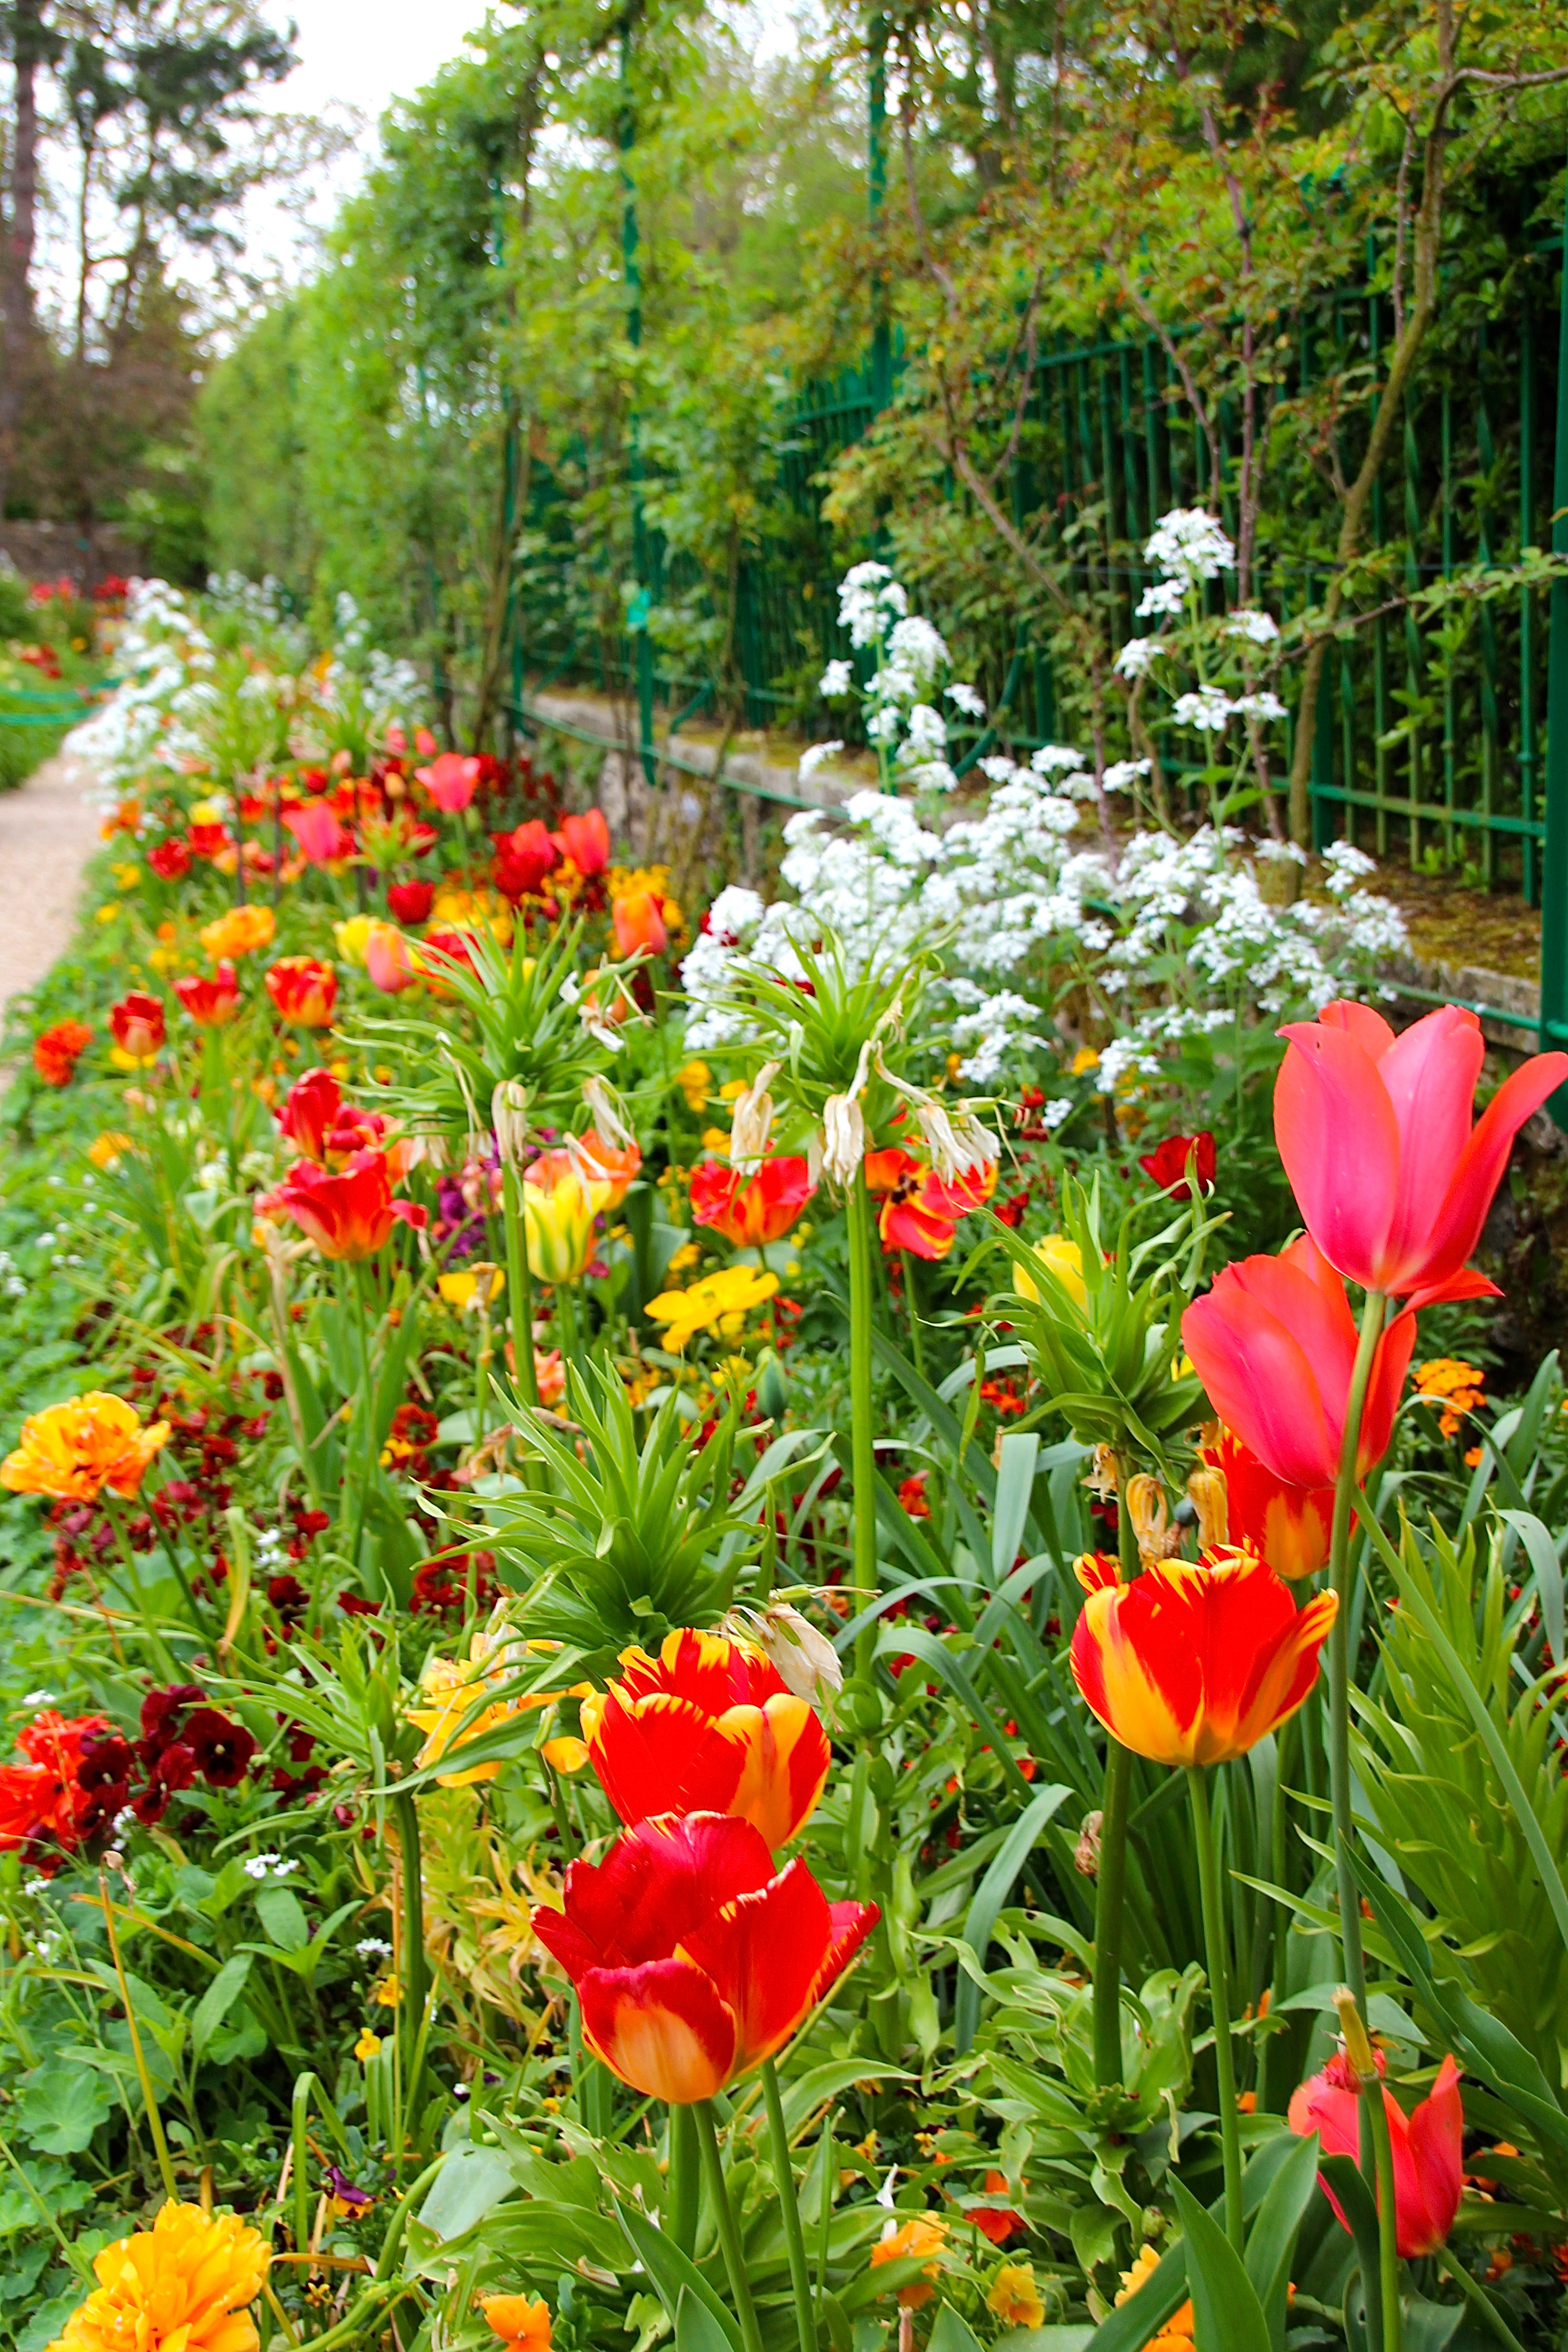 Spring flowers blooming at Giverny. France. 05.09.16. 5